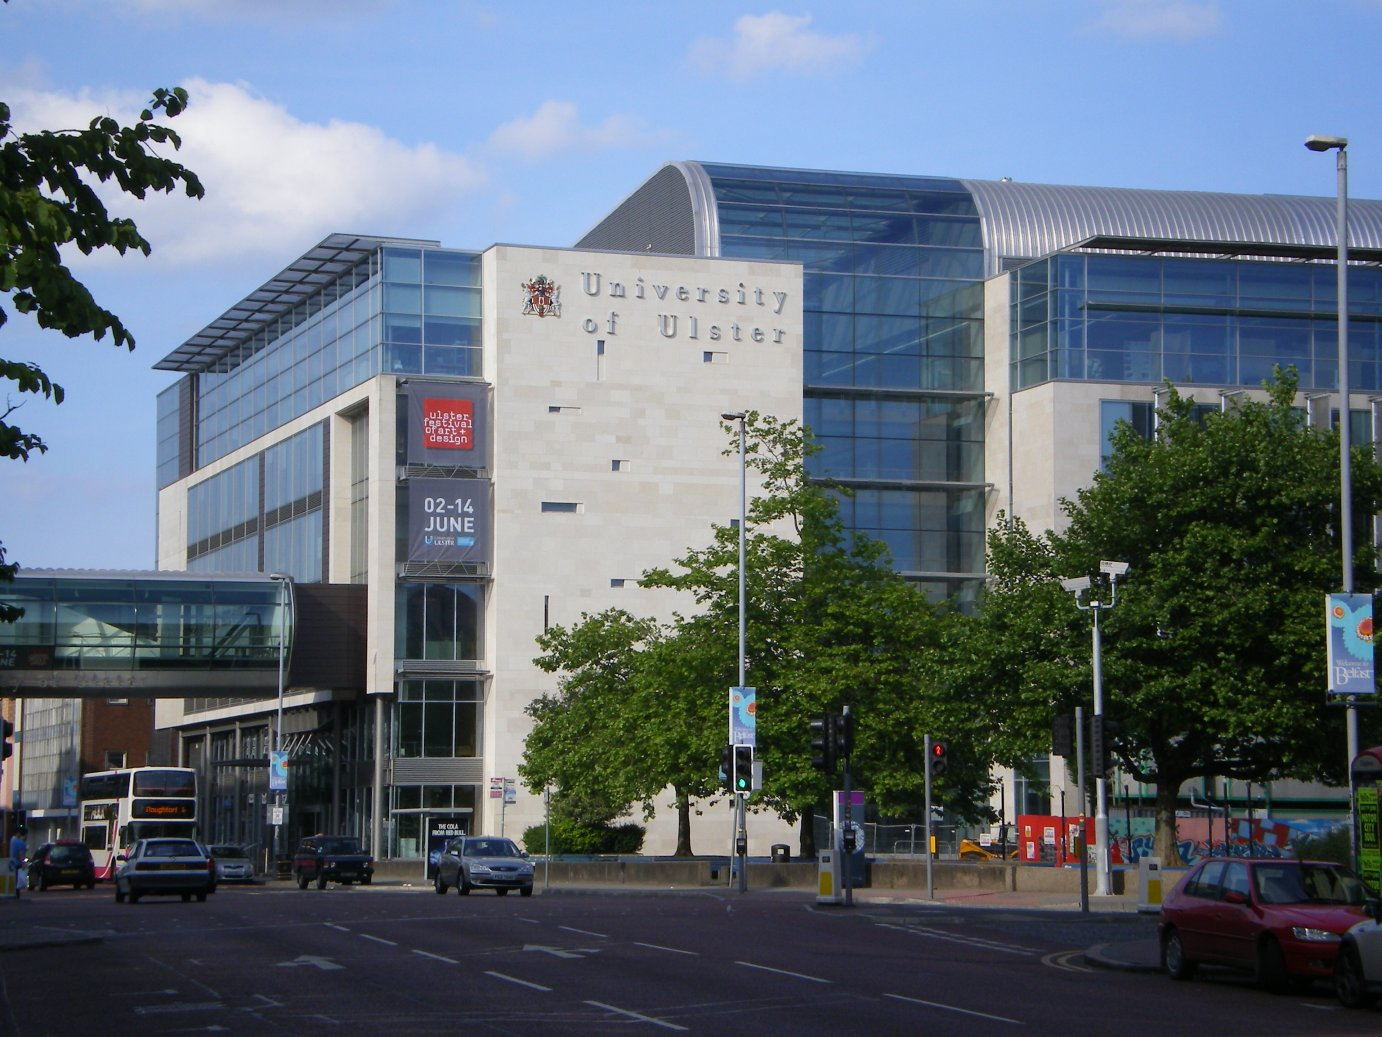 File:Belfast-University-of-Ulster.jpg - Wikipedia, the free ...